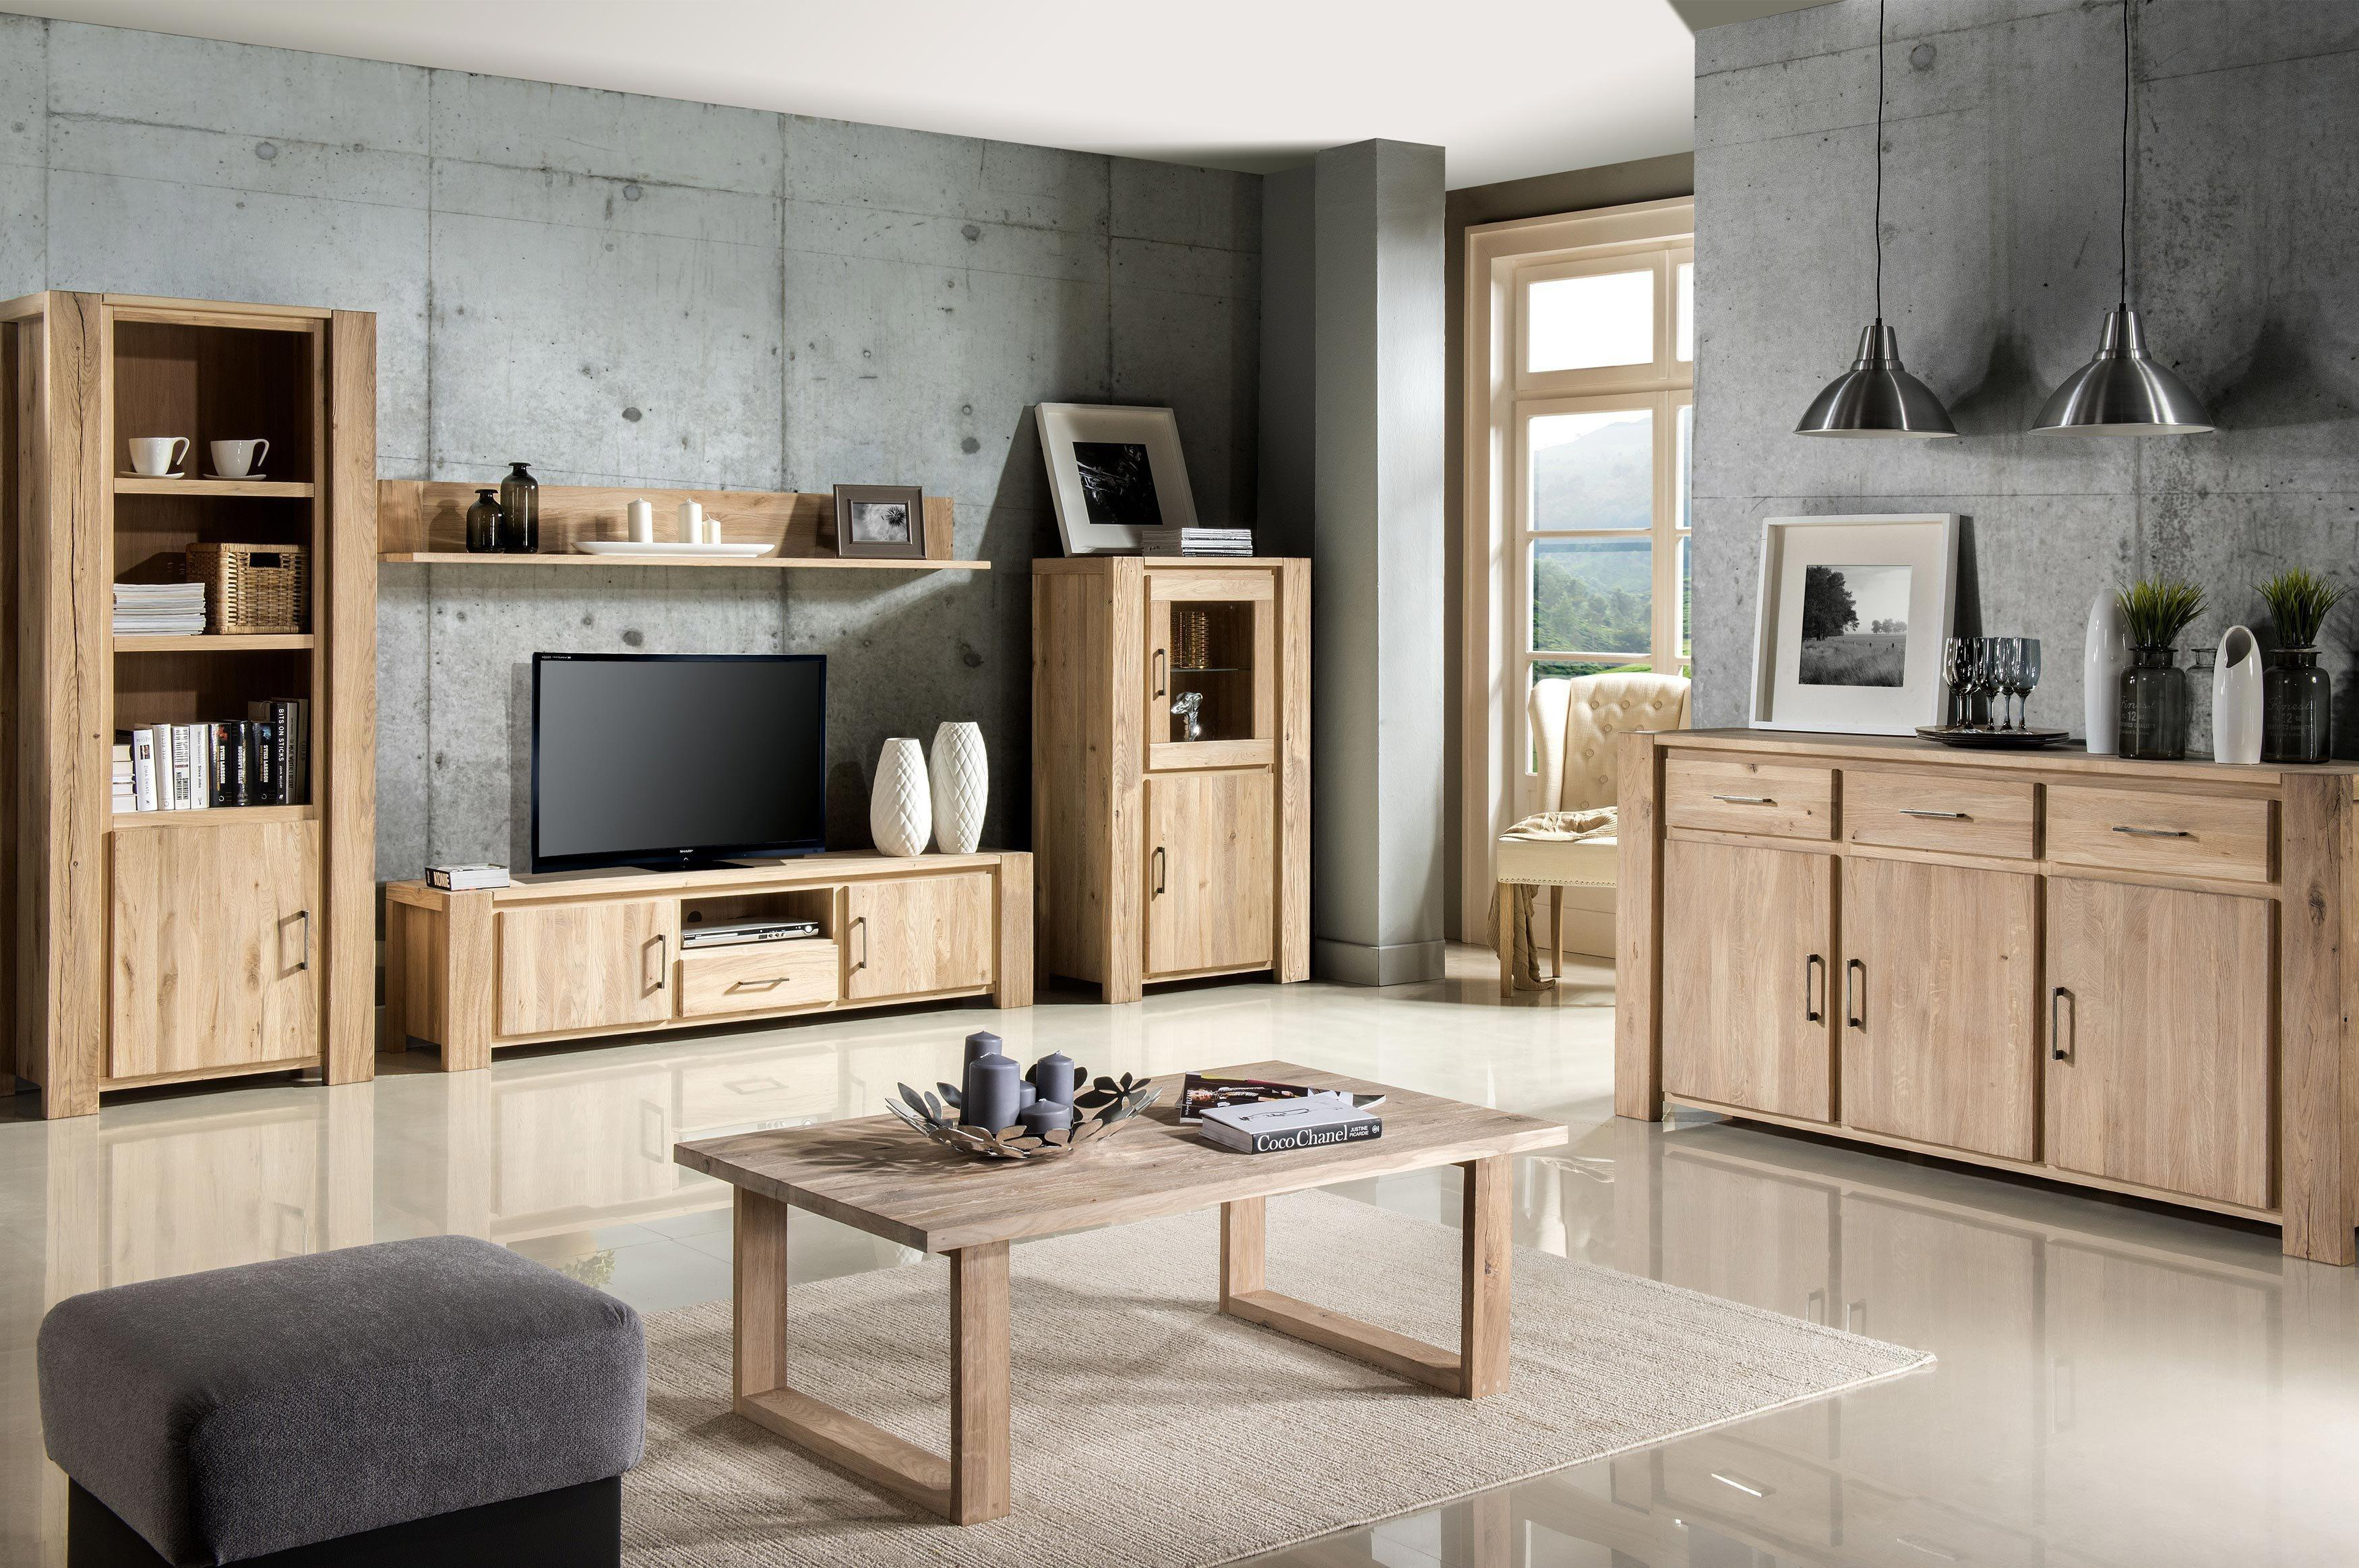 ratgeber eichenholz m bel online kaufen g nstig im online shop von m bel letz. Black Bedroom Furniture Sets. Home Design Ideas